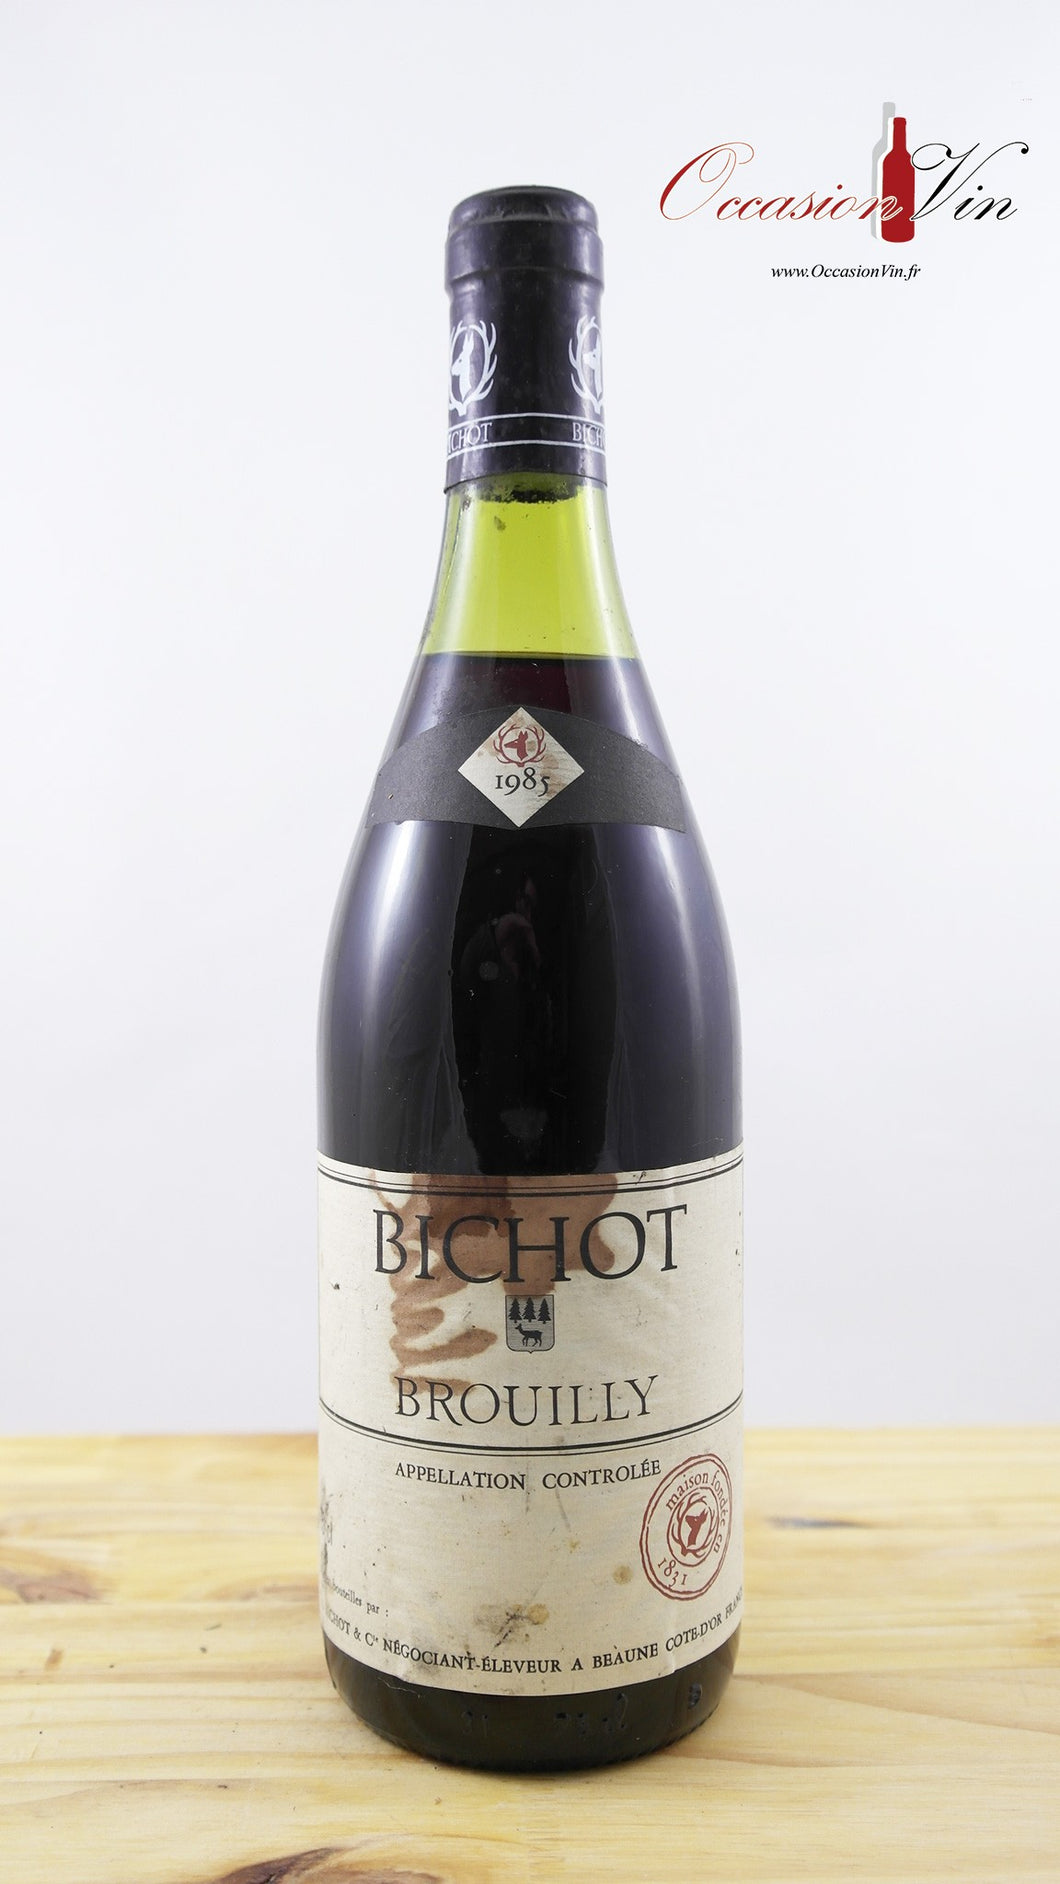 Bichot Brouilly EA Vin 1985